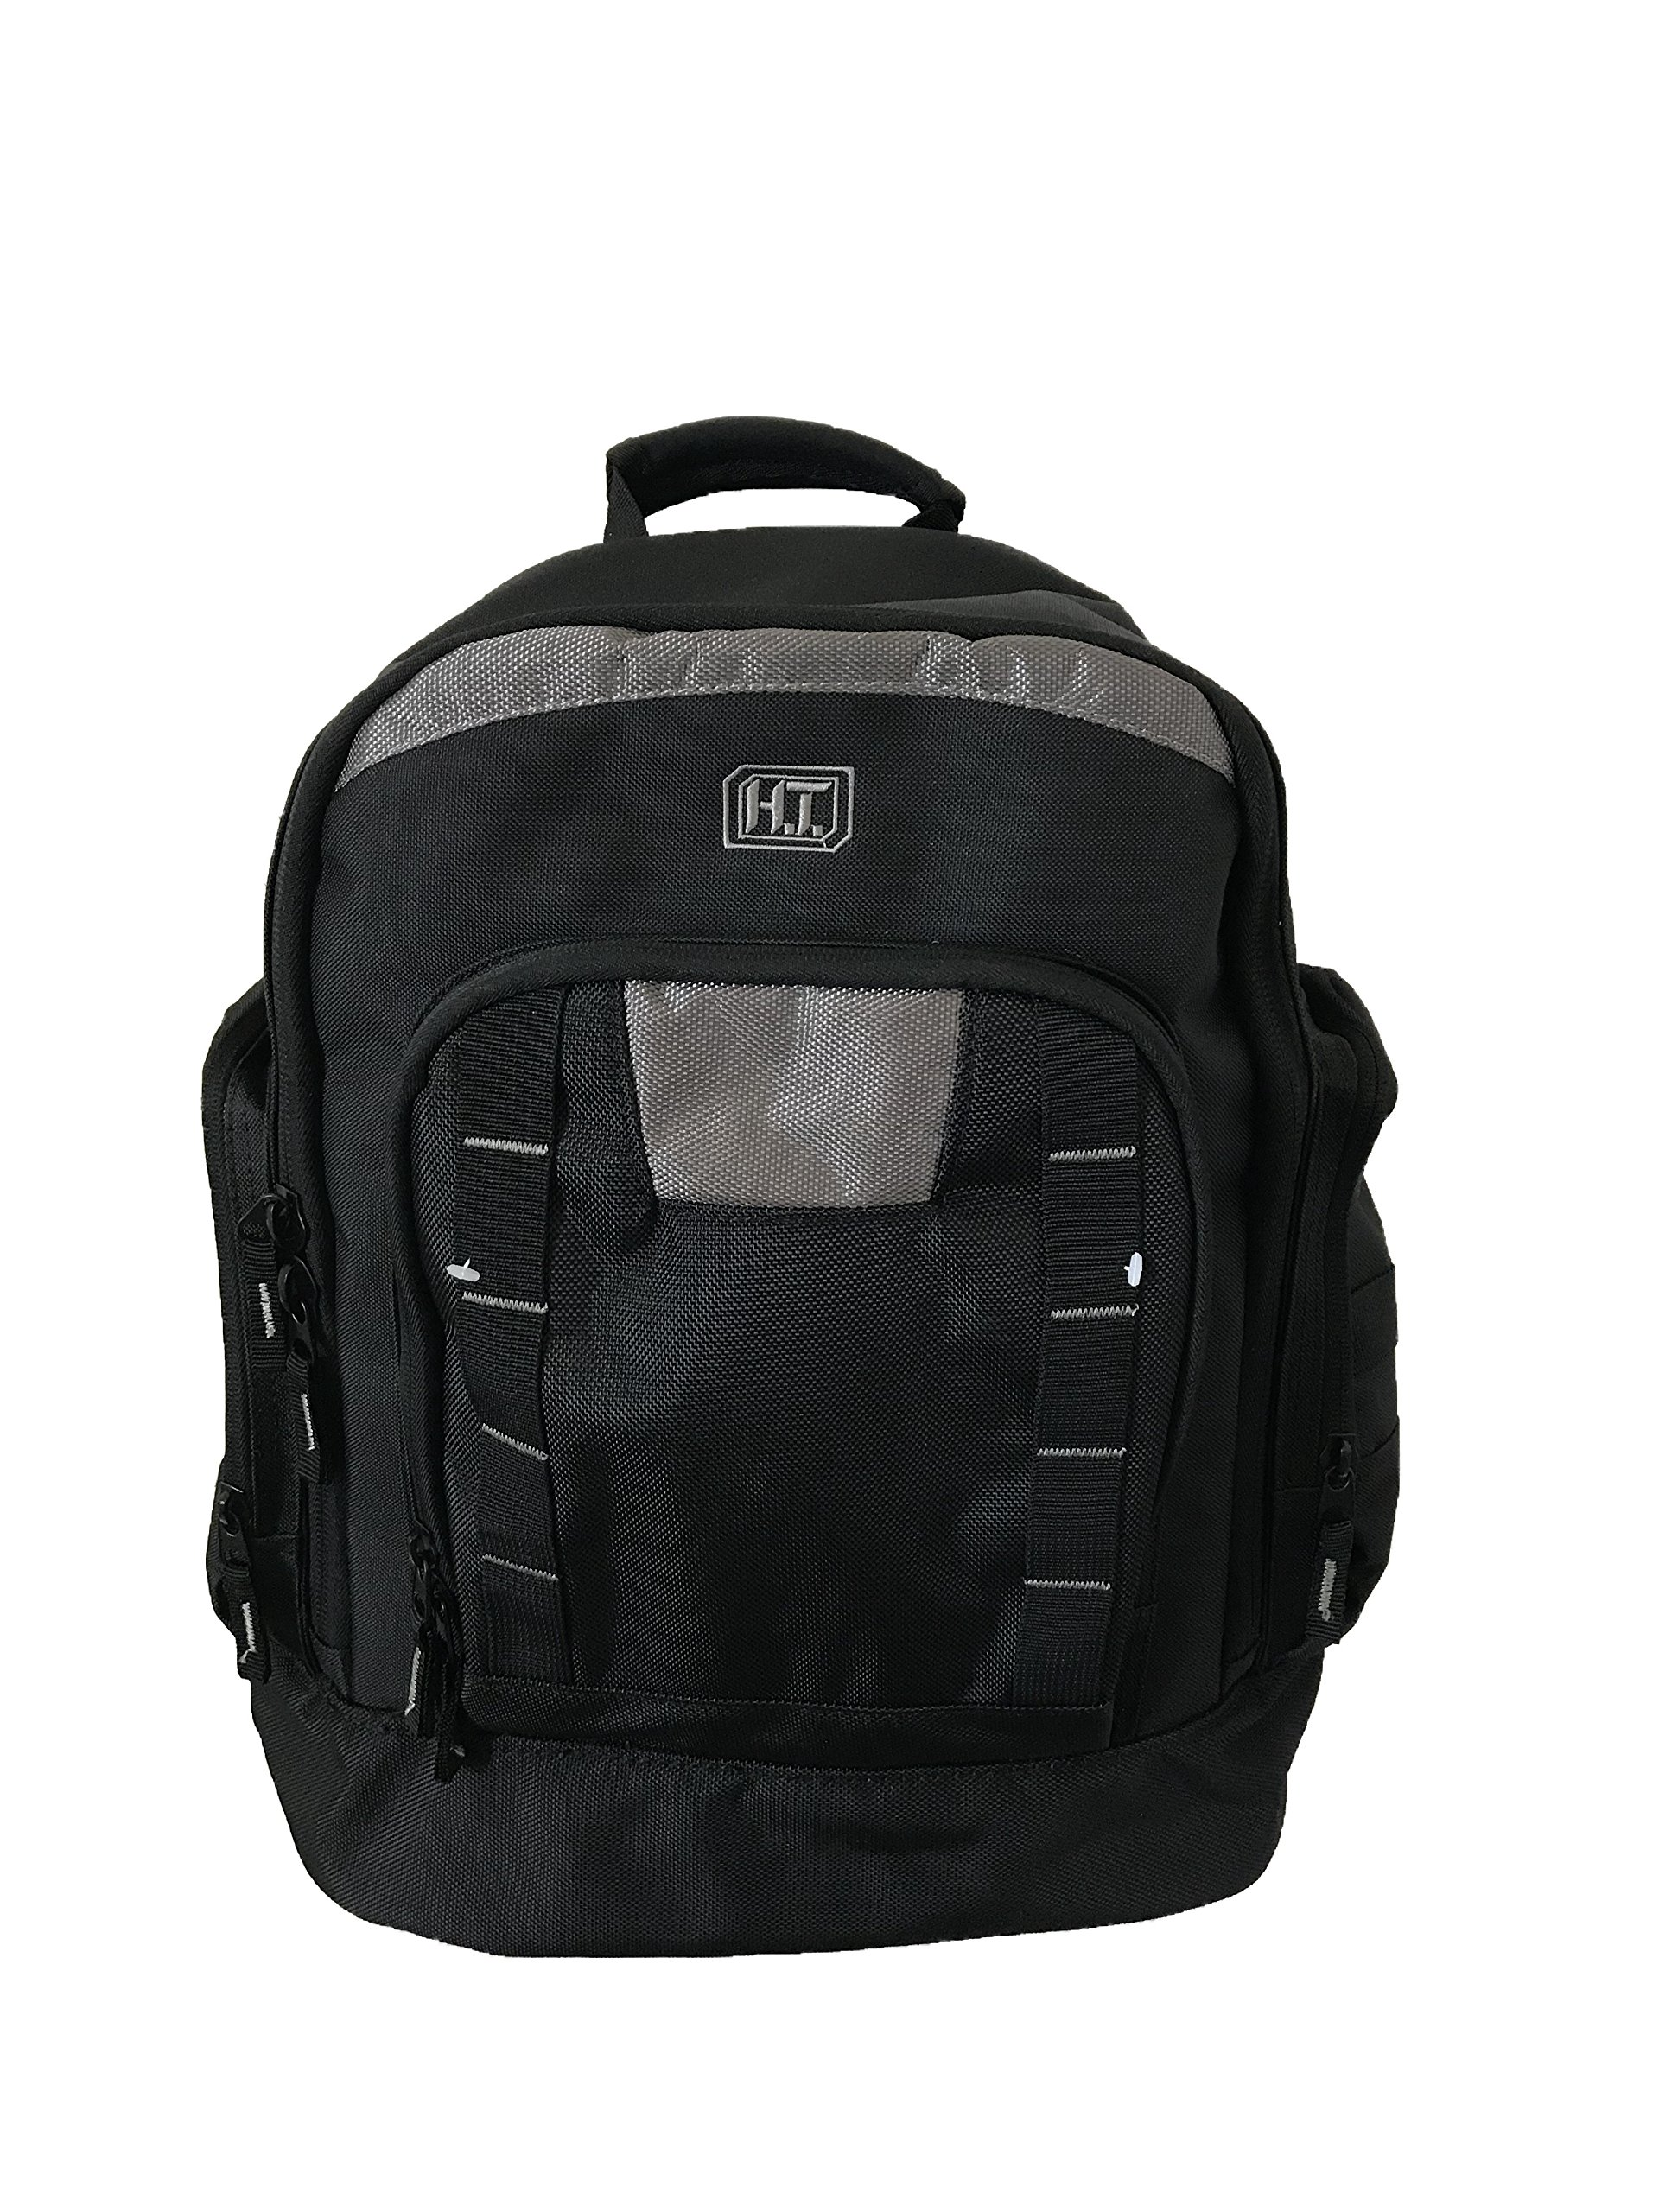 Highland Tactical Men's Extreme Tool Backpack Black